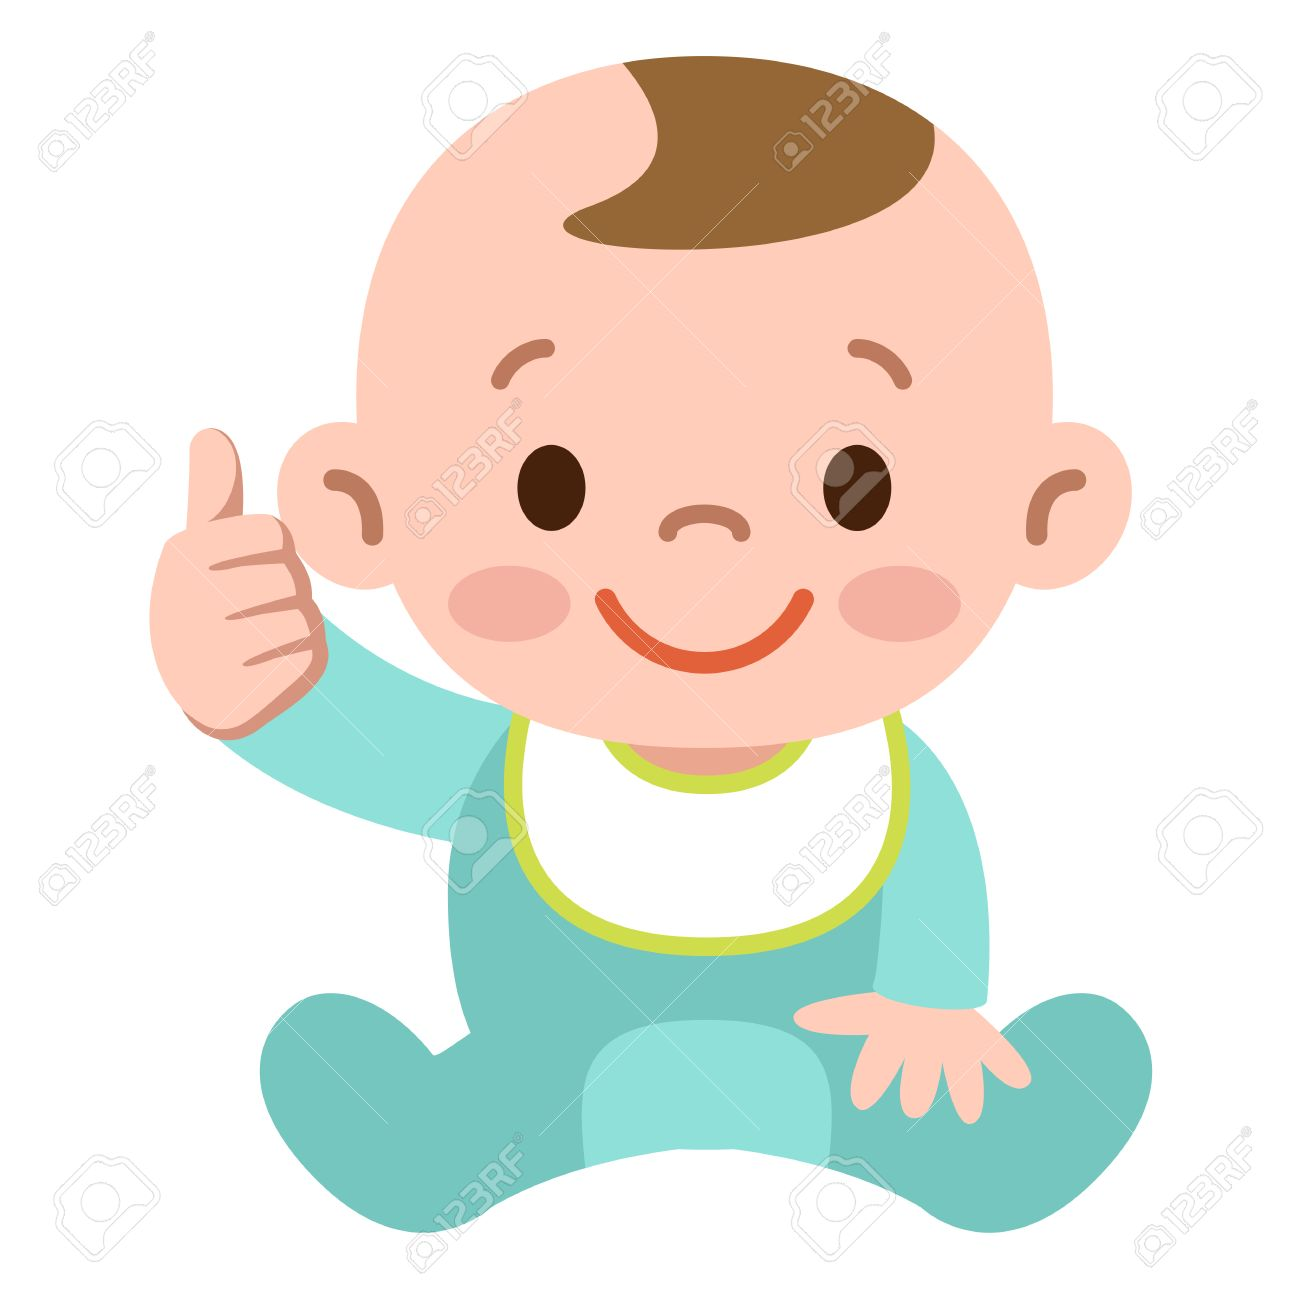 Thumbs up baby - 51337458